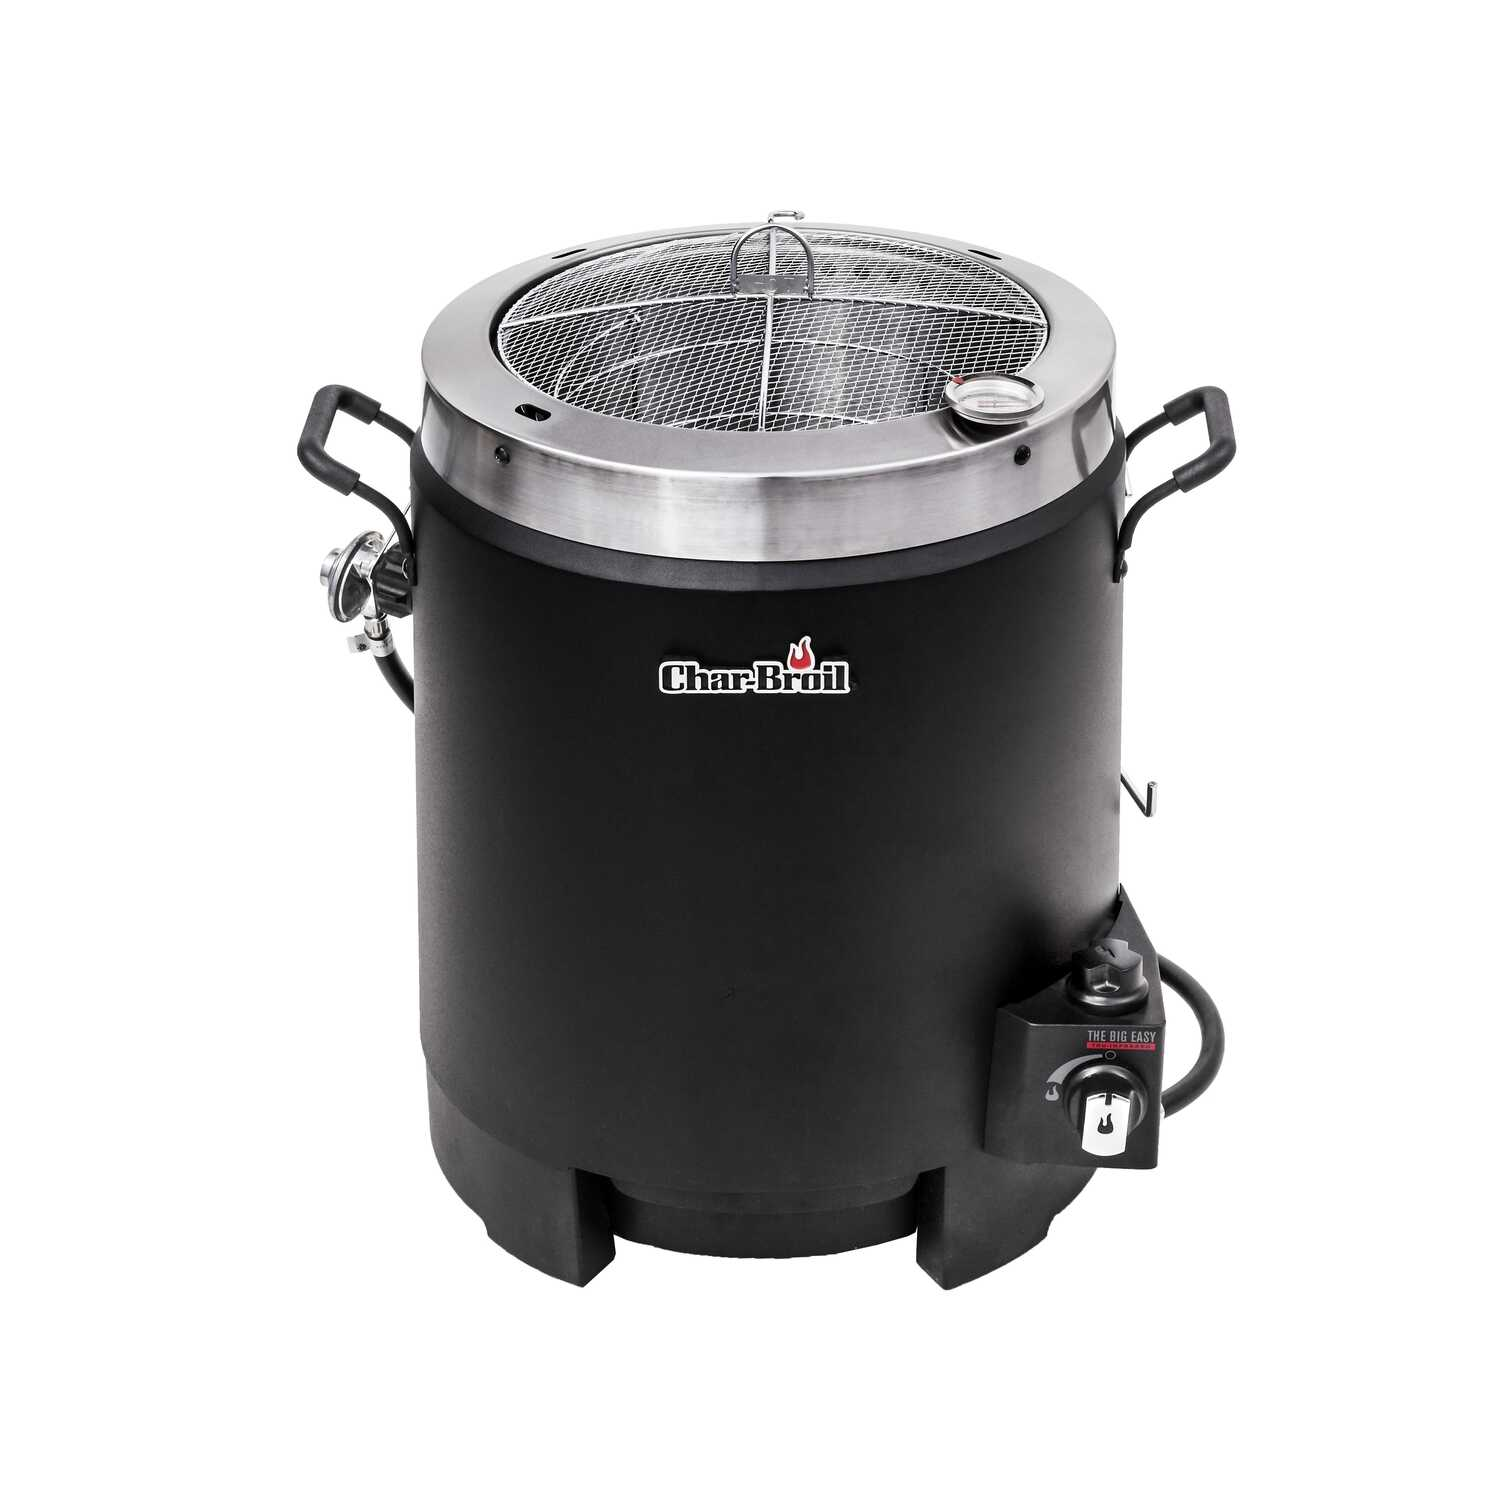 Char-Broil  Stainless Steel  Oil-less Turkey Fryer  35 lbs. oz.